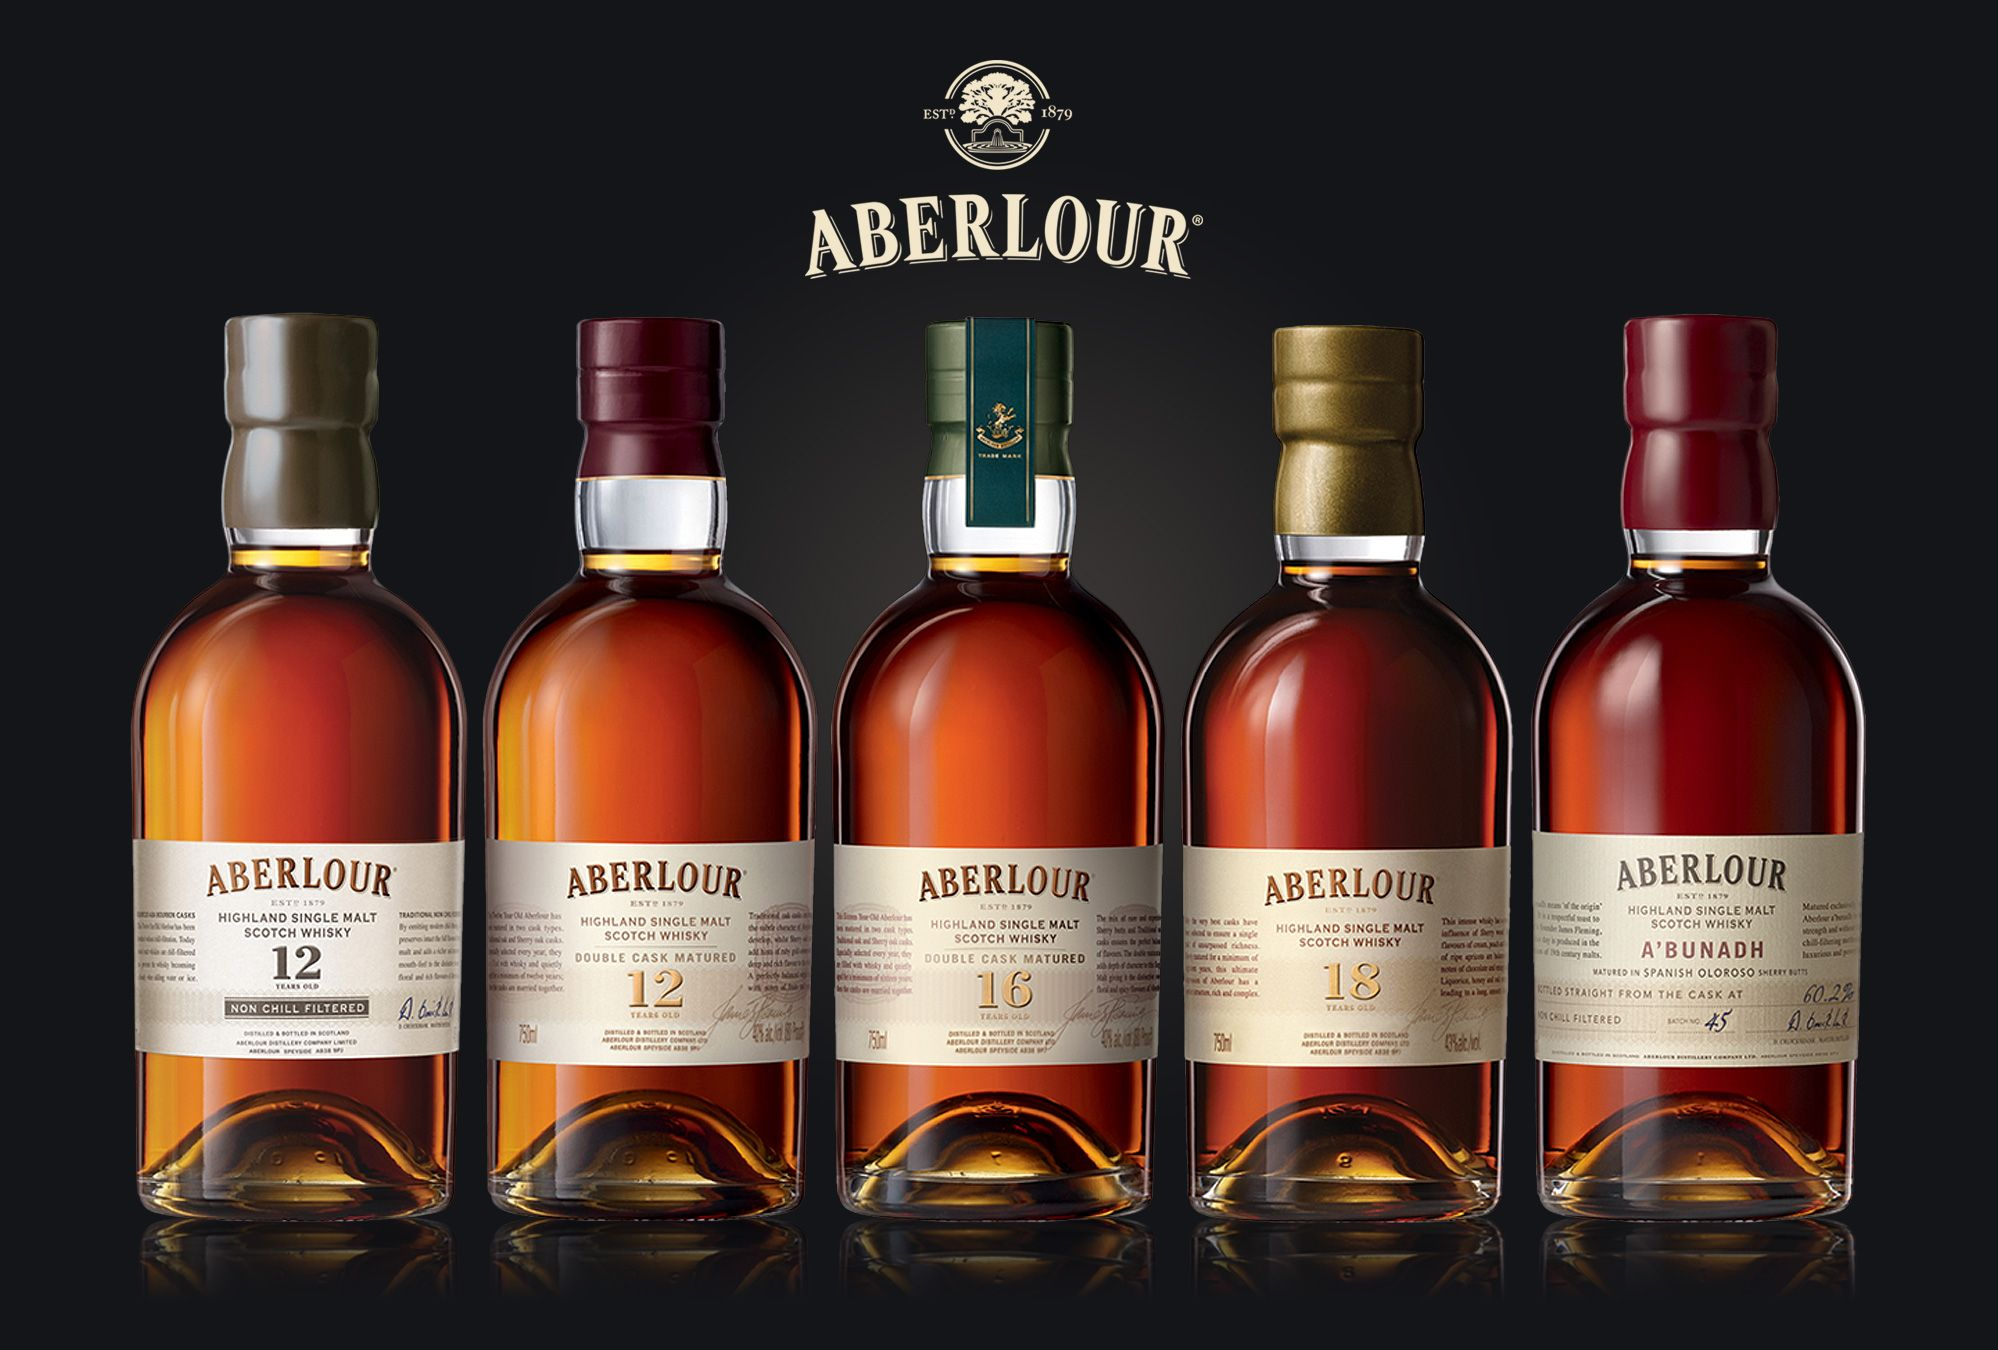 aberlour-hunting-club-2016-folkr-03 - Folkr | Mode, lifestyle, art ...